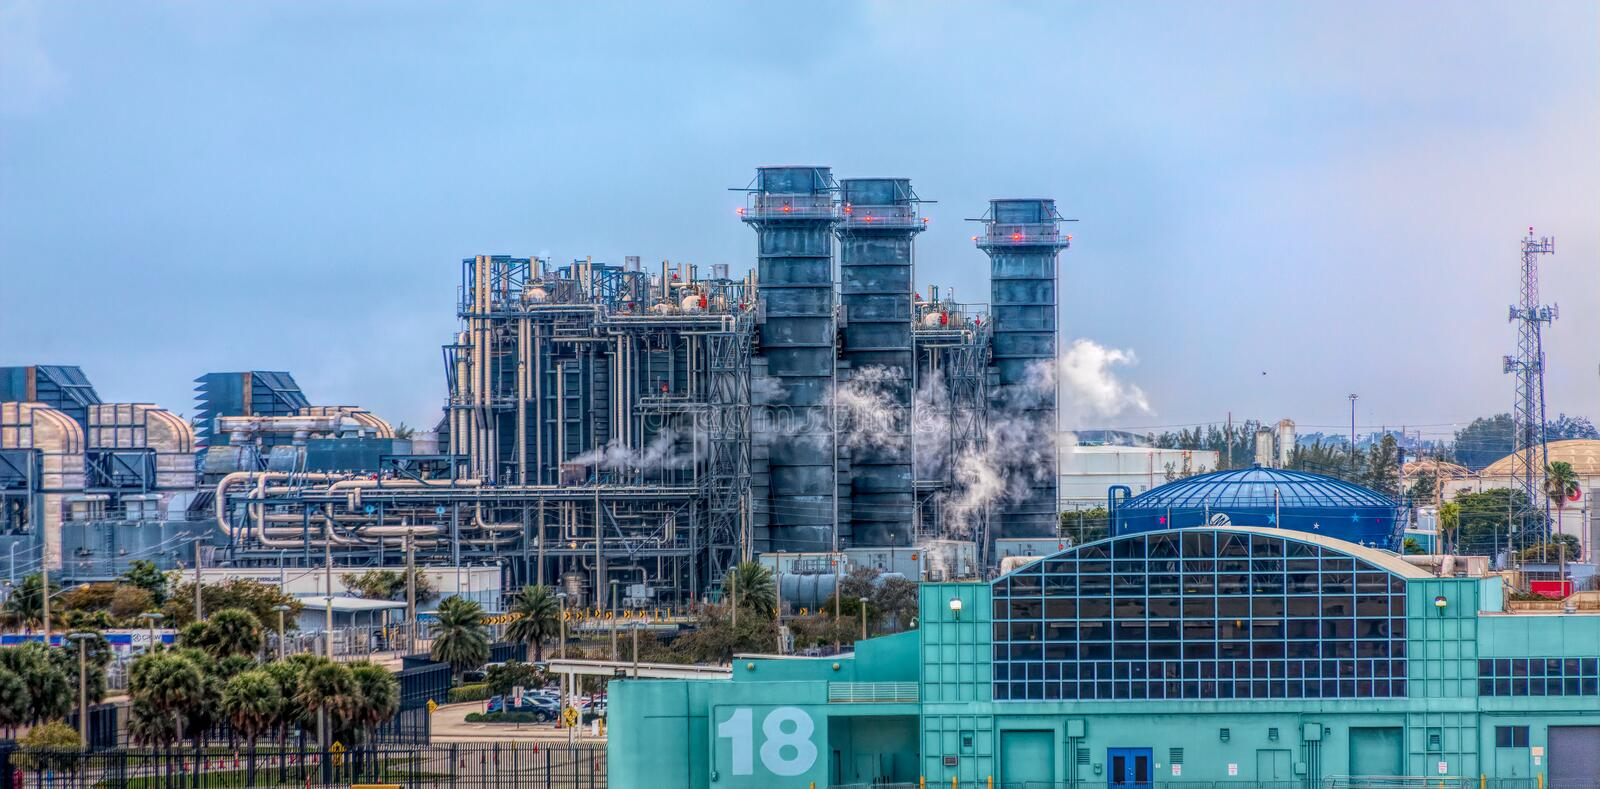 Seaside Industrial Area. Steam coming from Industrial Smokestacks in a busy seaport royalty free stock photos